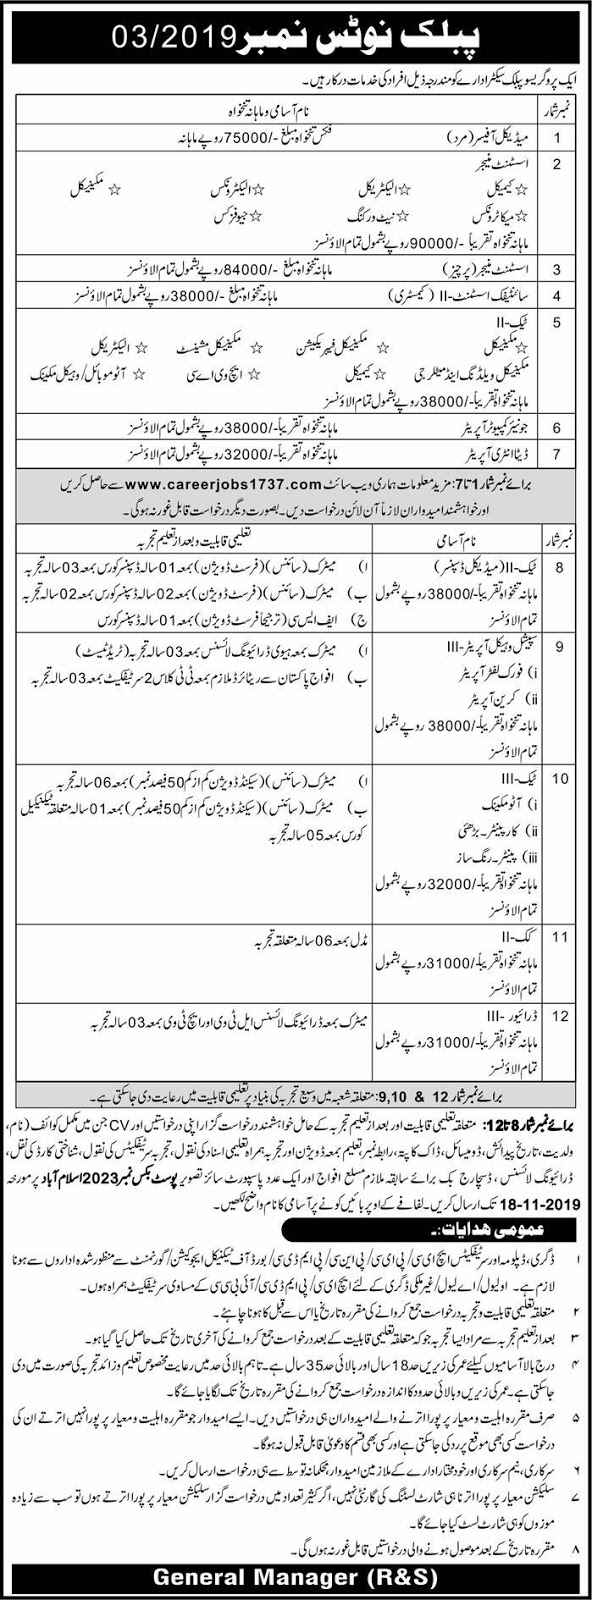 Public Sector Organization Jobs 2019 P.O.Box 2023 Latest